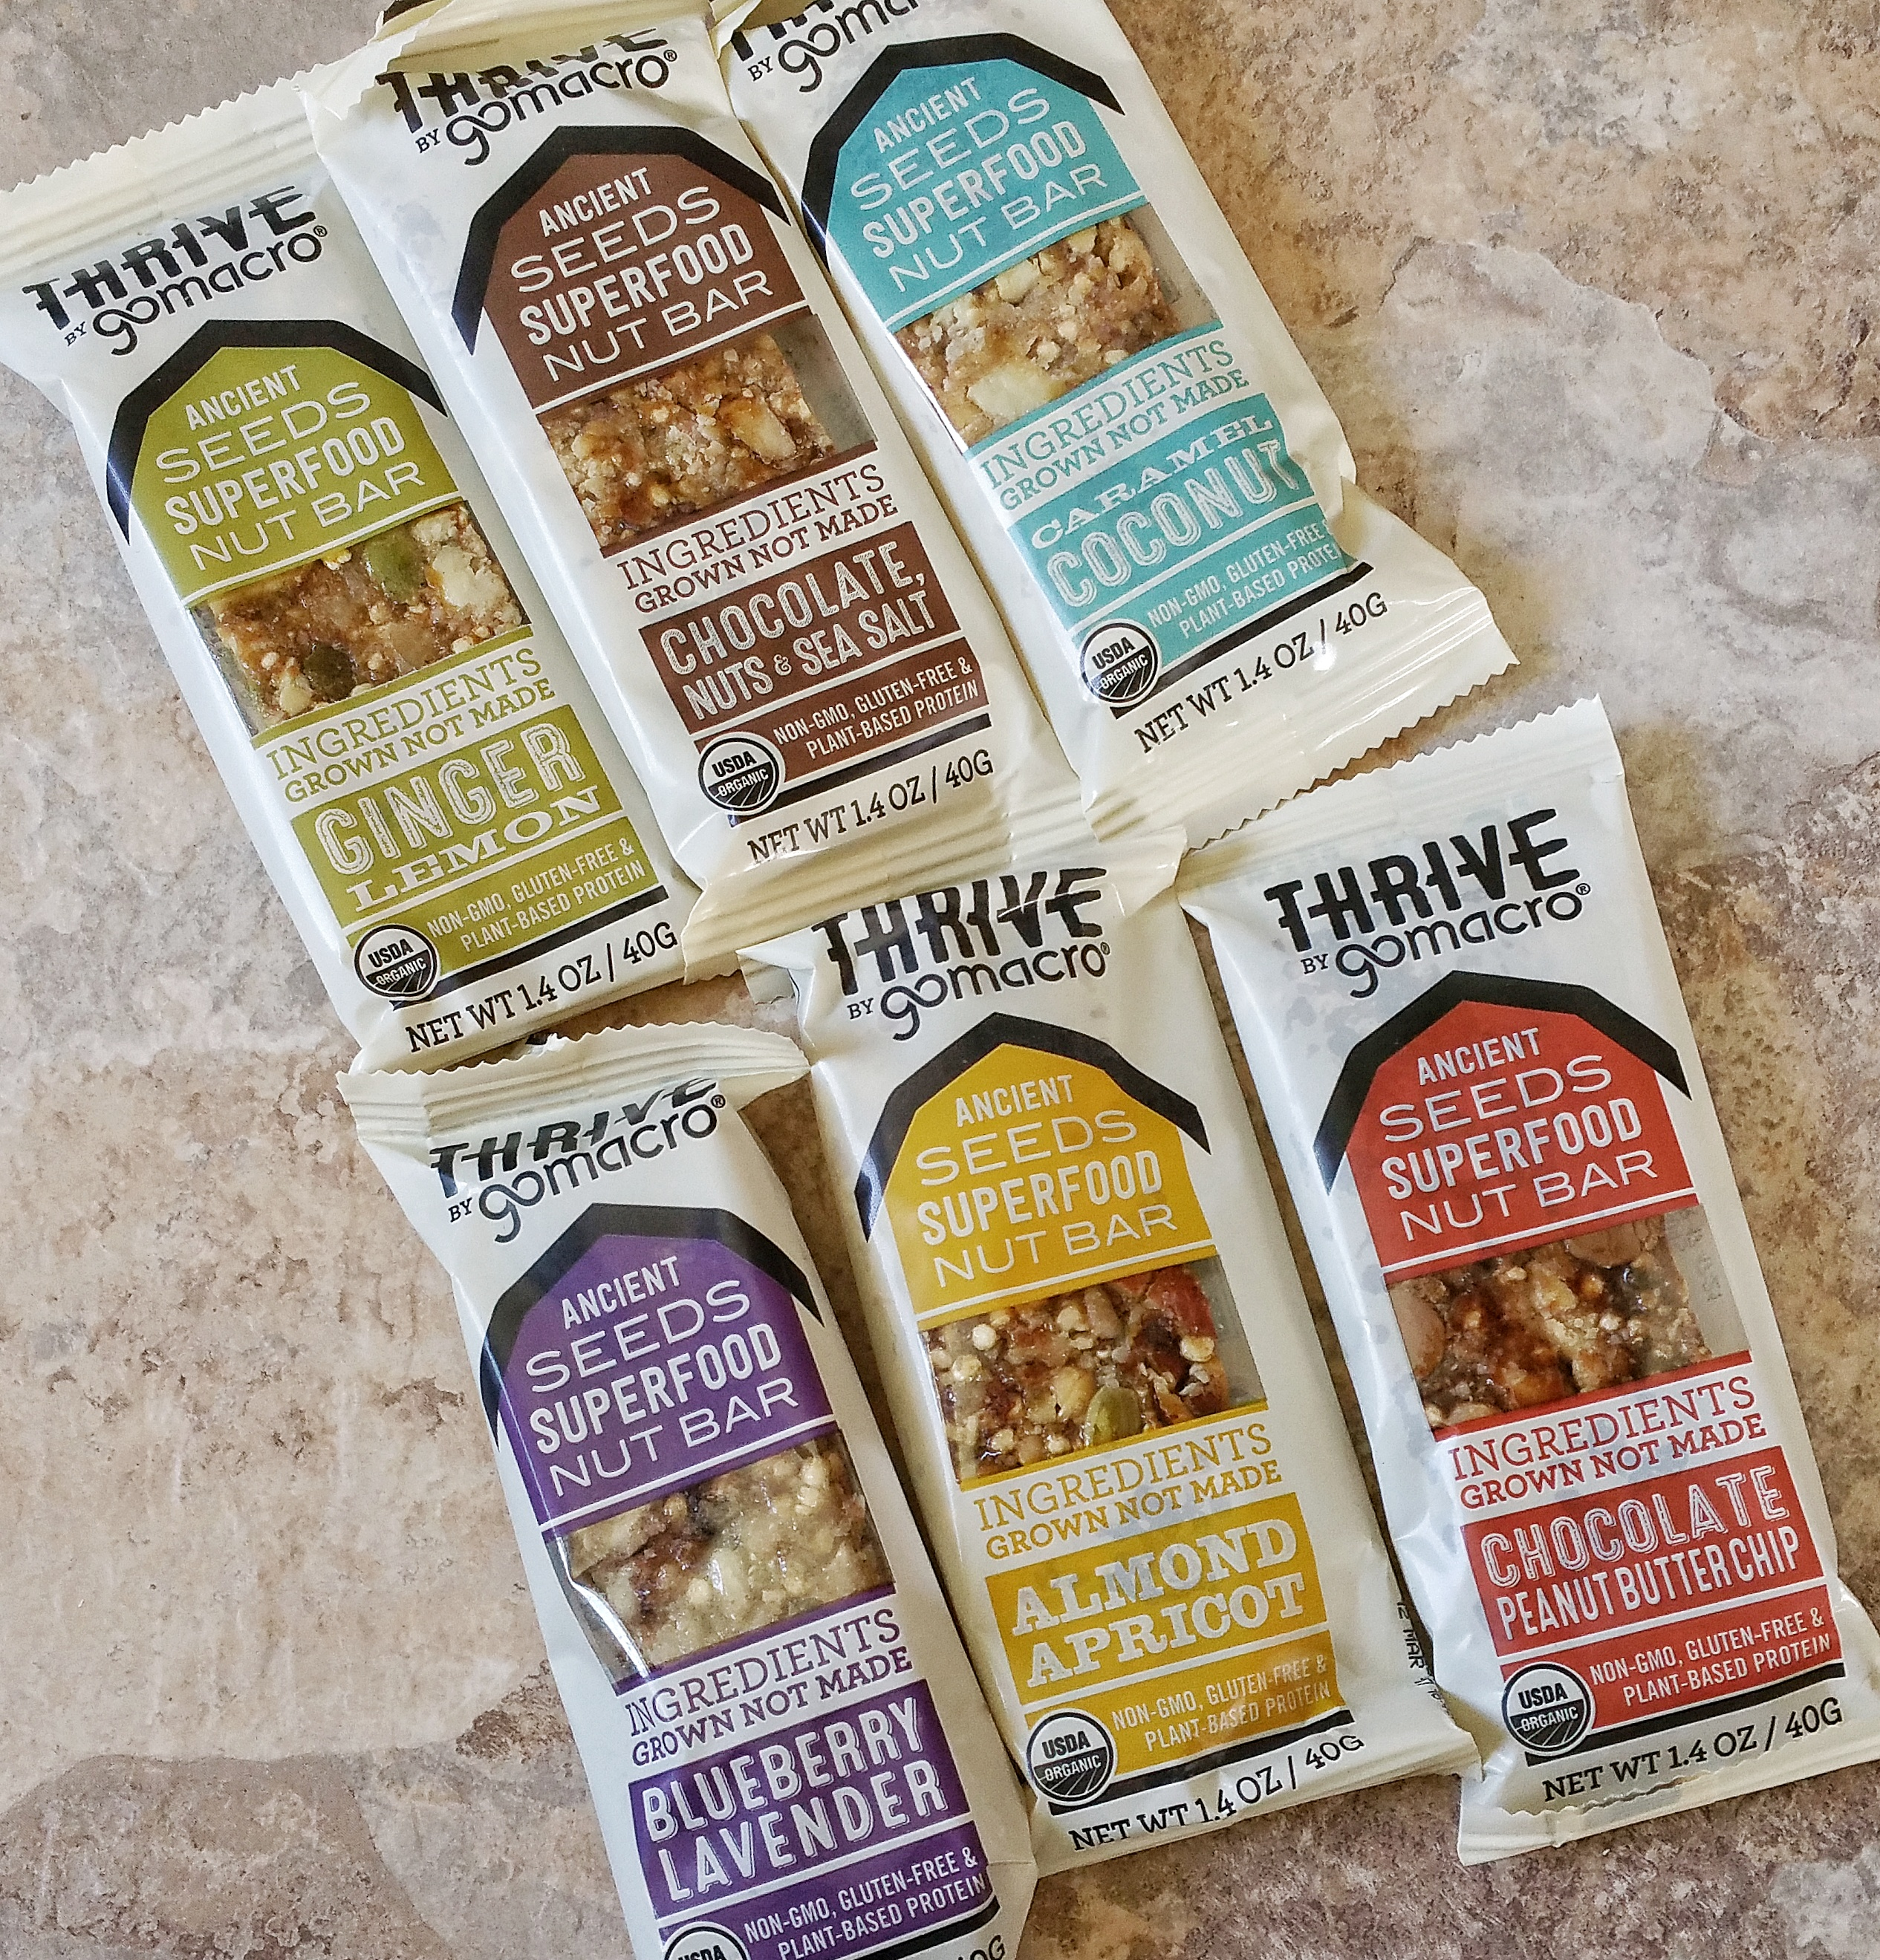 GoMacro, healthy treats, snack bars, food, Thrive by GoMacro, bars, food, superfood nut bar, nut bar, ancient seeds, taste test, treat, snack,